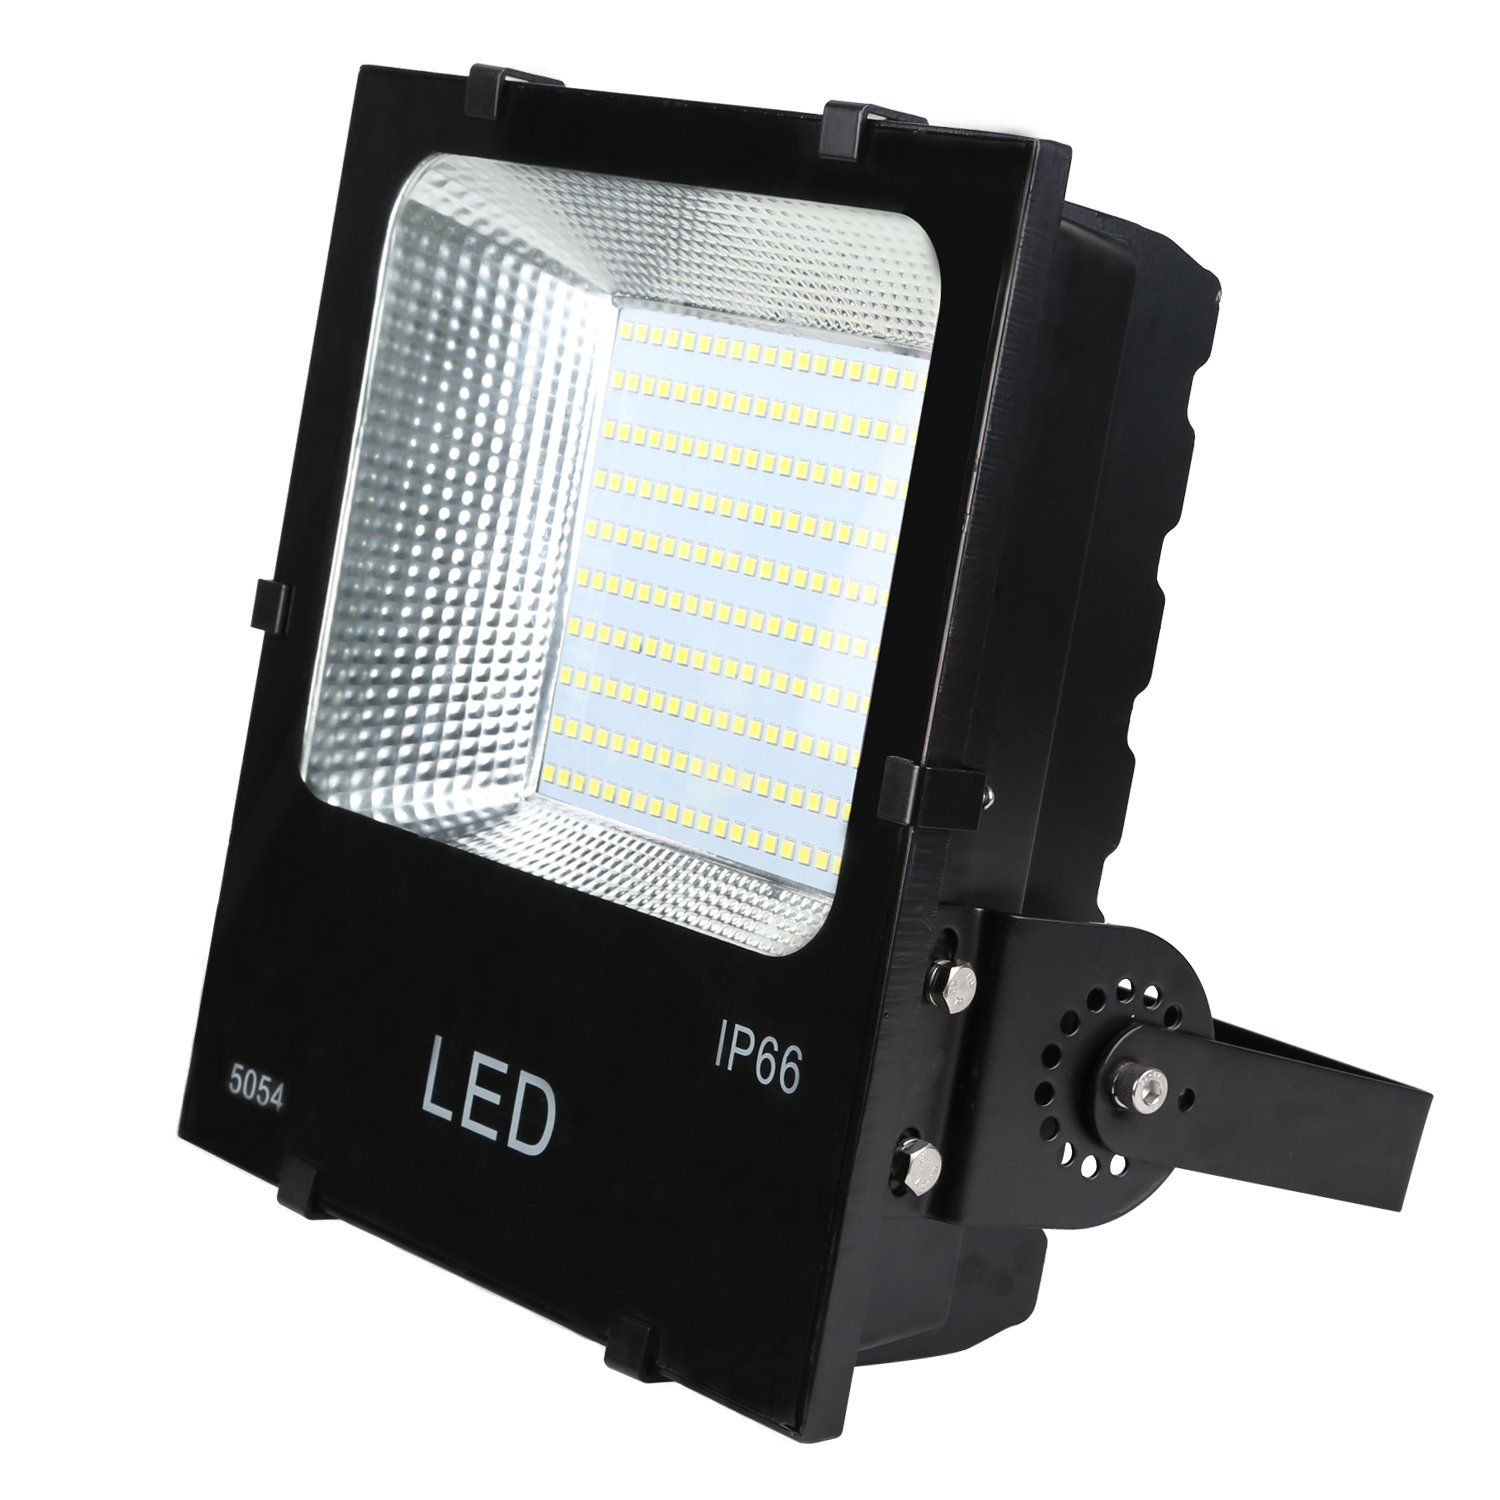 Commercial Outdoor Led Flood Light Fixtures Hykolity 200W Led Flood Light Outdoor Security Light Weatherproof